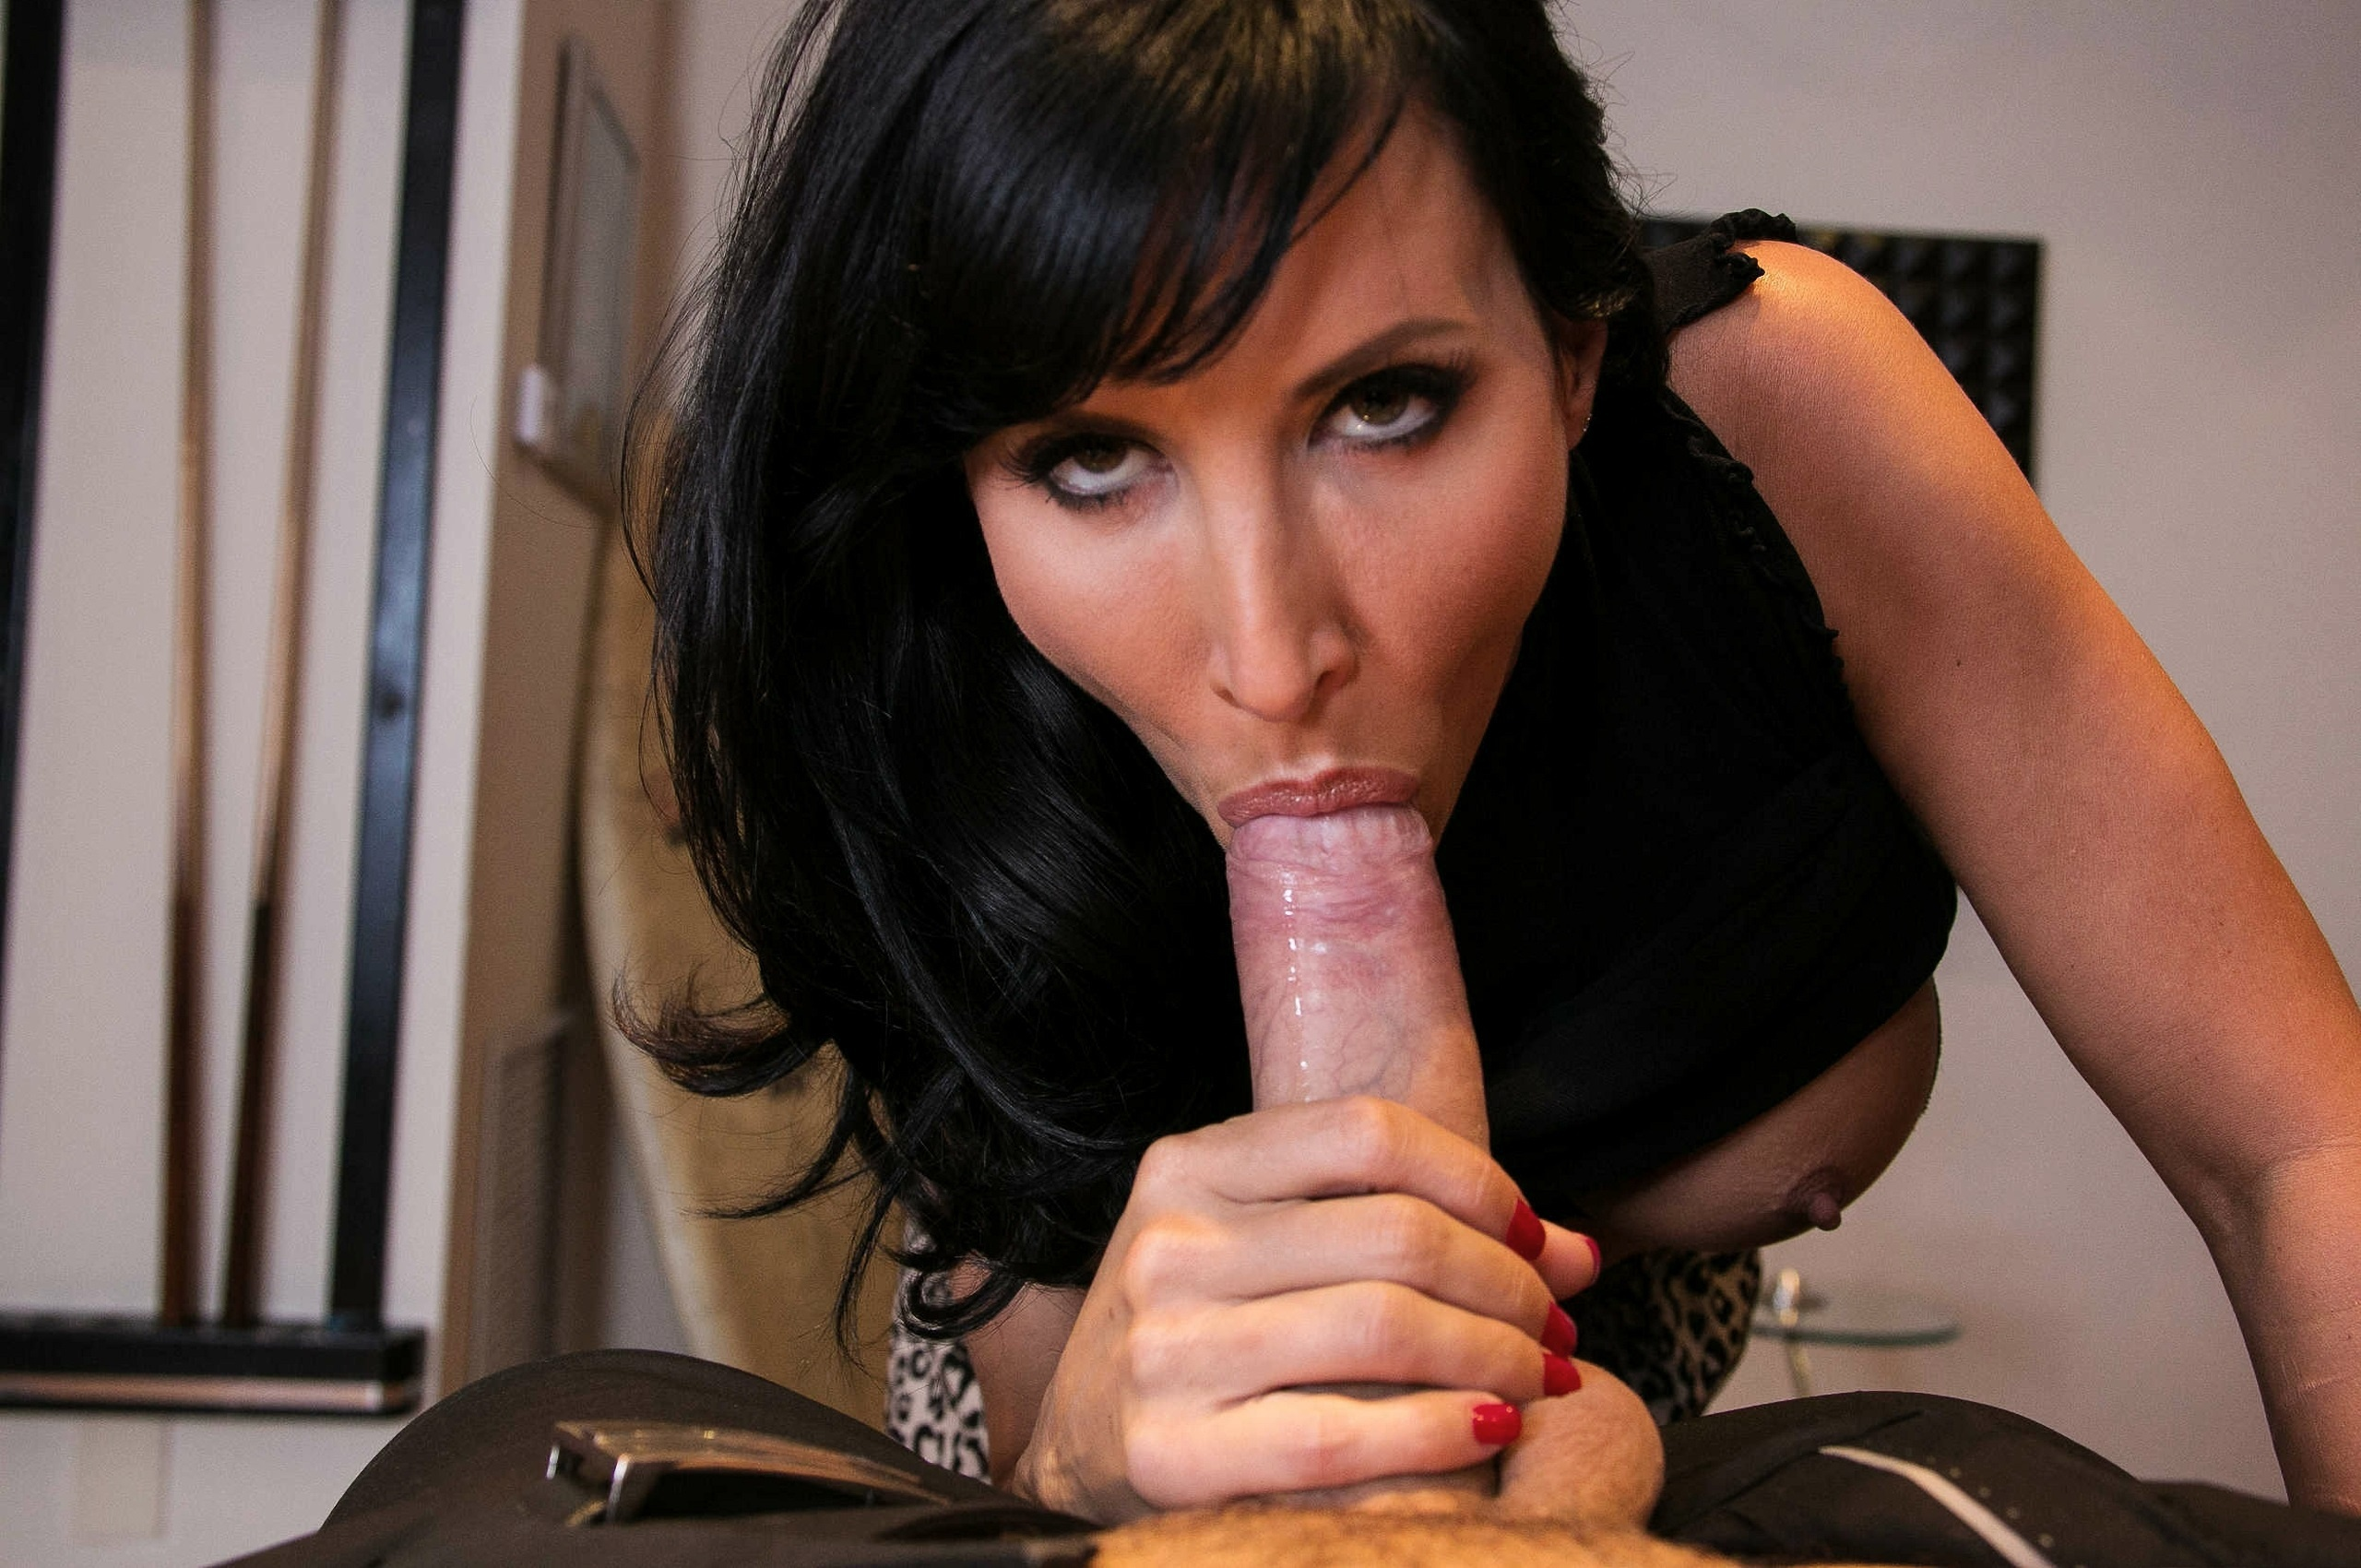 Showing Xxx Images For Octomom Sucking Dick Porn Xxx